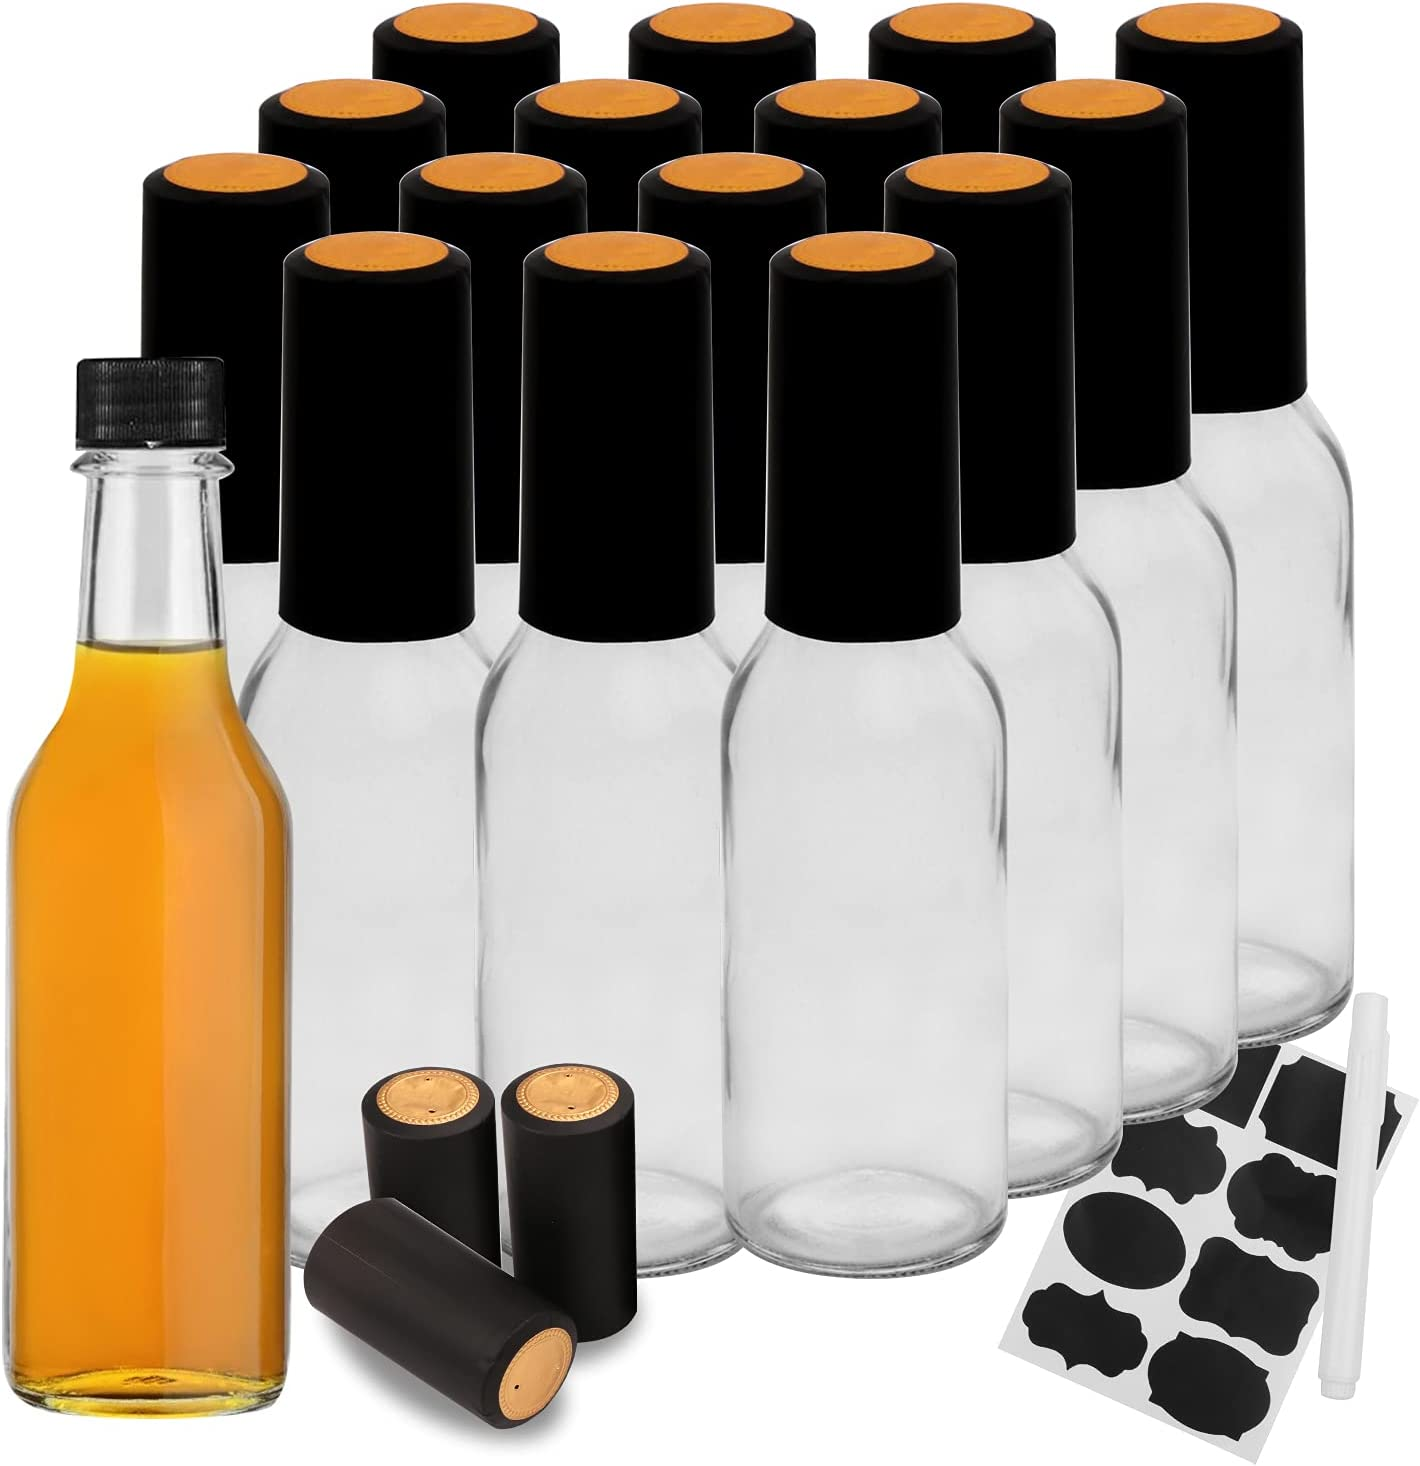 Hot Safety and trust Sauce Soldering Bottles with Black Caps Maredash gla pack empty 16 5oz